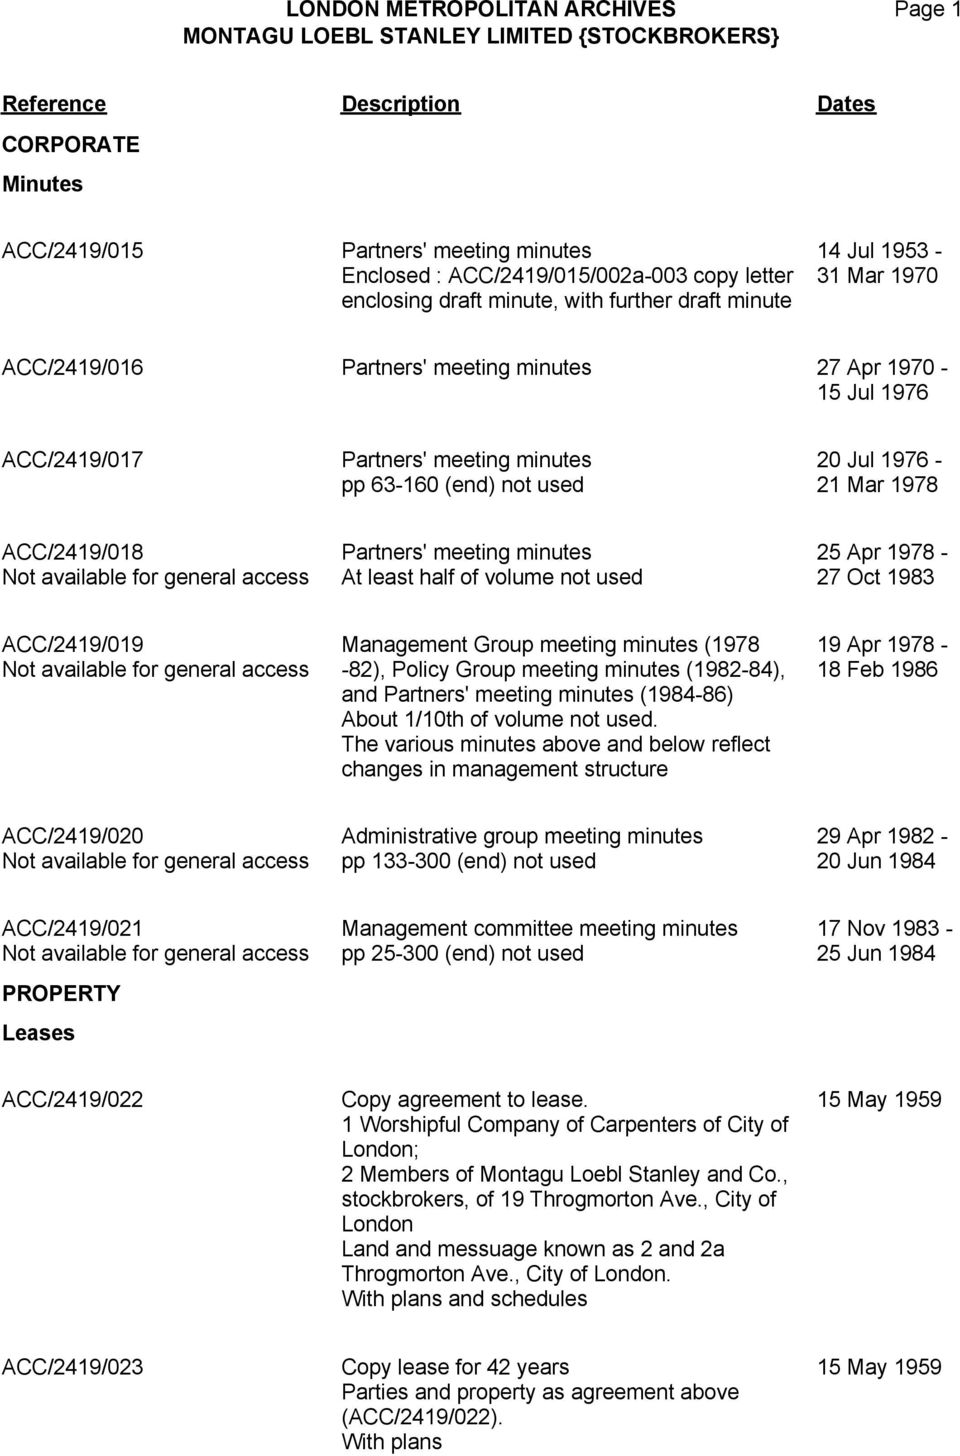 volume not used 25 Apr 1978-27 Oct 1983 ACC/2419/019 Management Group meeting minutes (1978-82), Policy Group meeting minutes (1982-84), and Partners' meeting minutes (1984-86) About 1/10th of volume